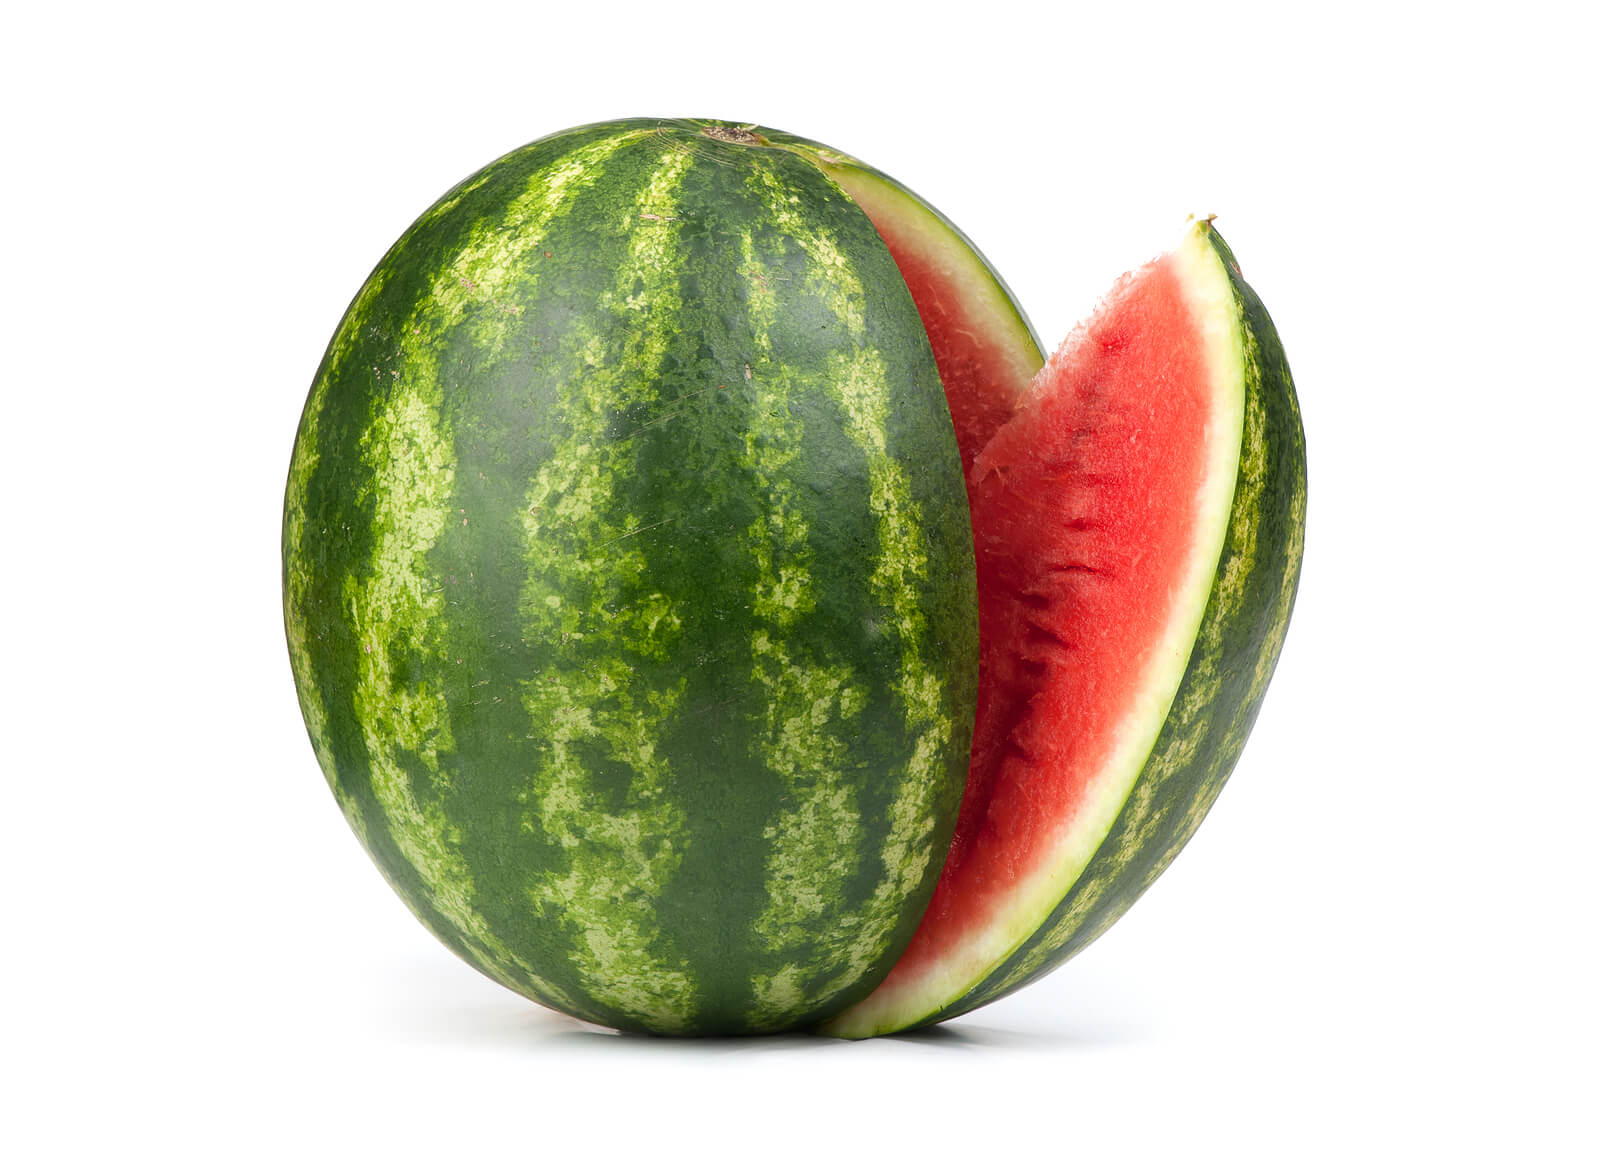 Watermelon's avatar